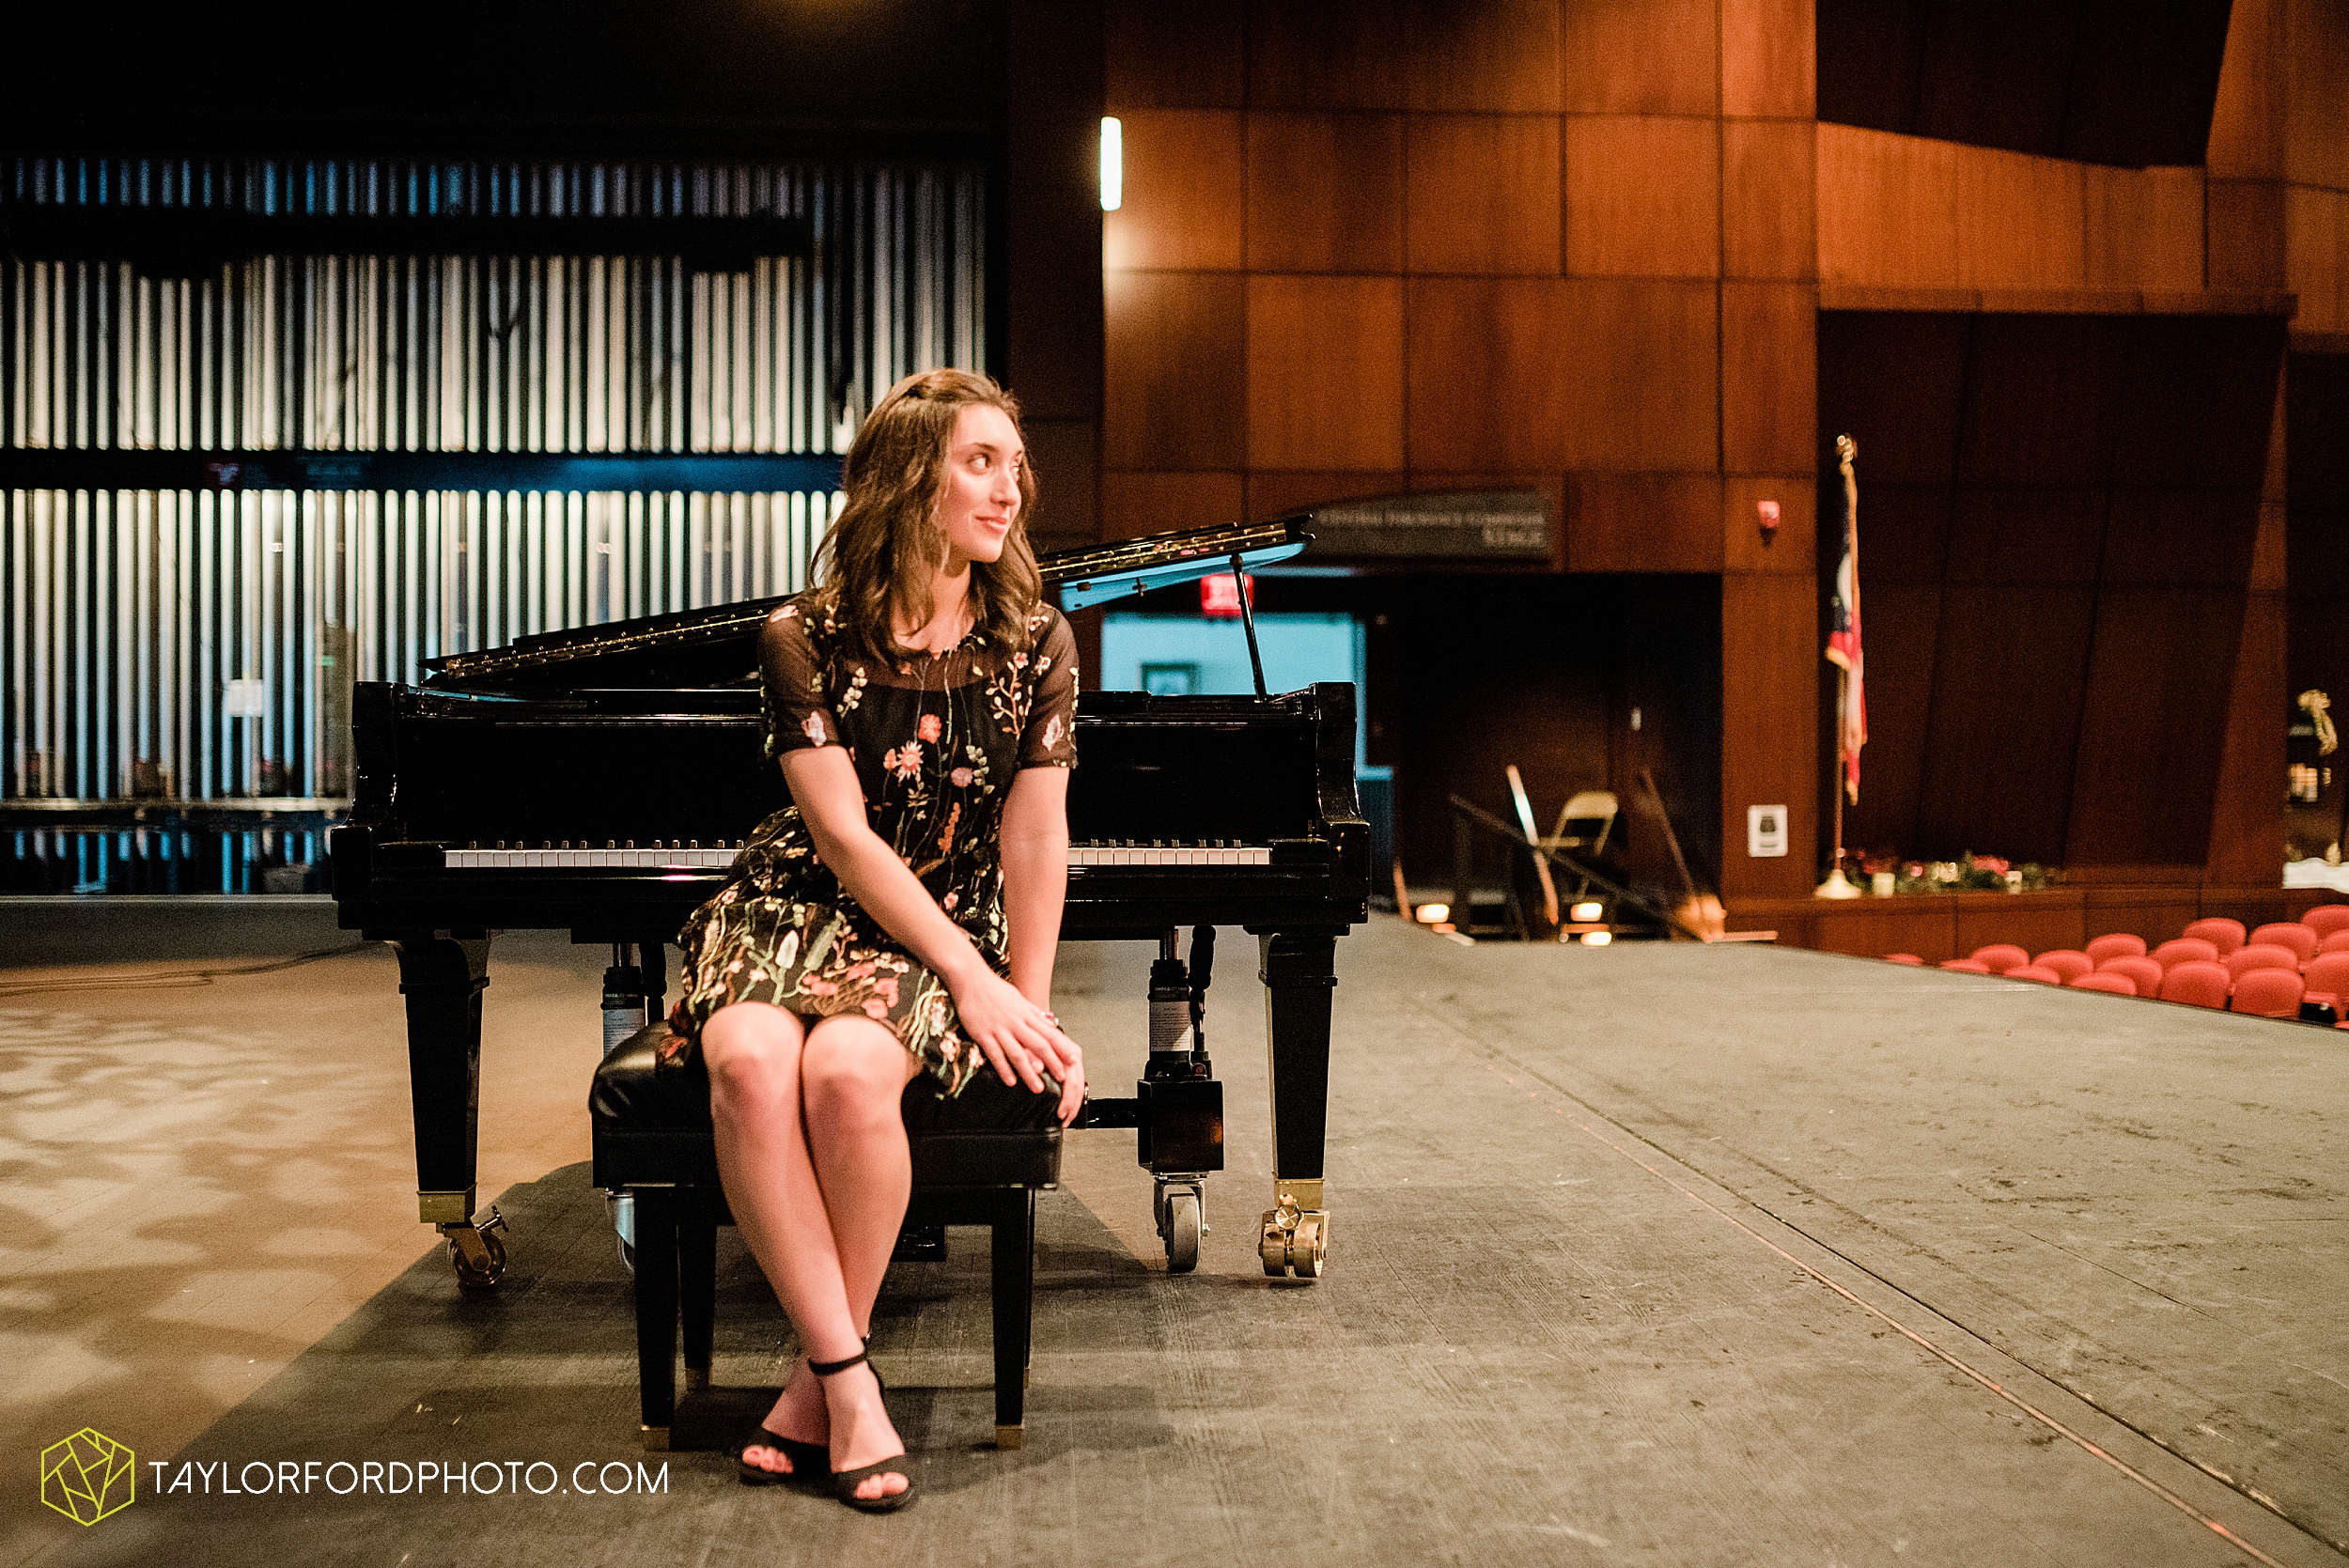 niswonger-performing-arts-center-senior-grand-piano-van-wert-ohio-photography-taylor-ford-hirschy-photographer_2107.jpg